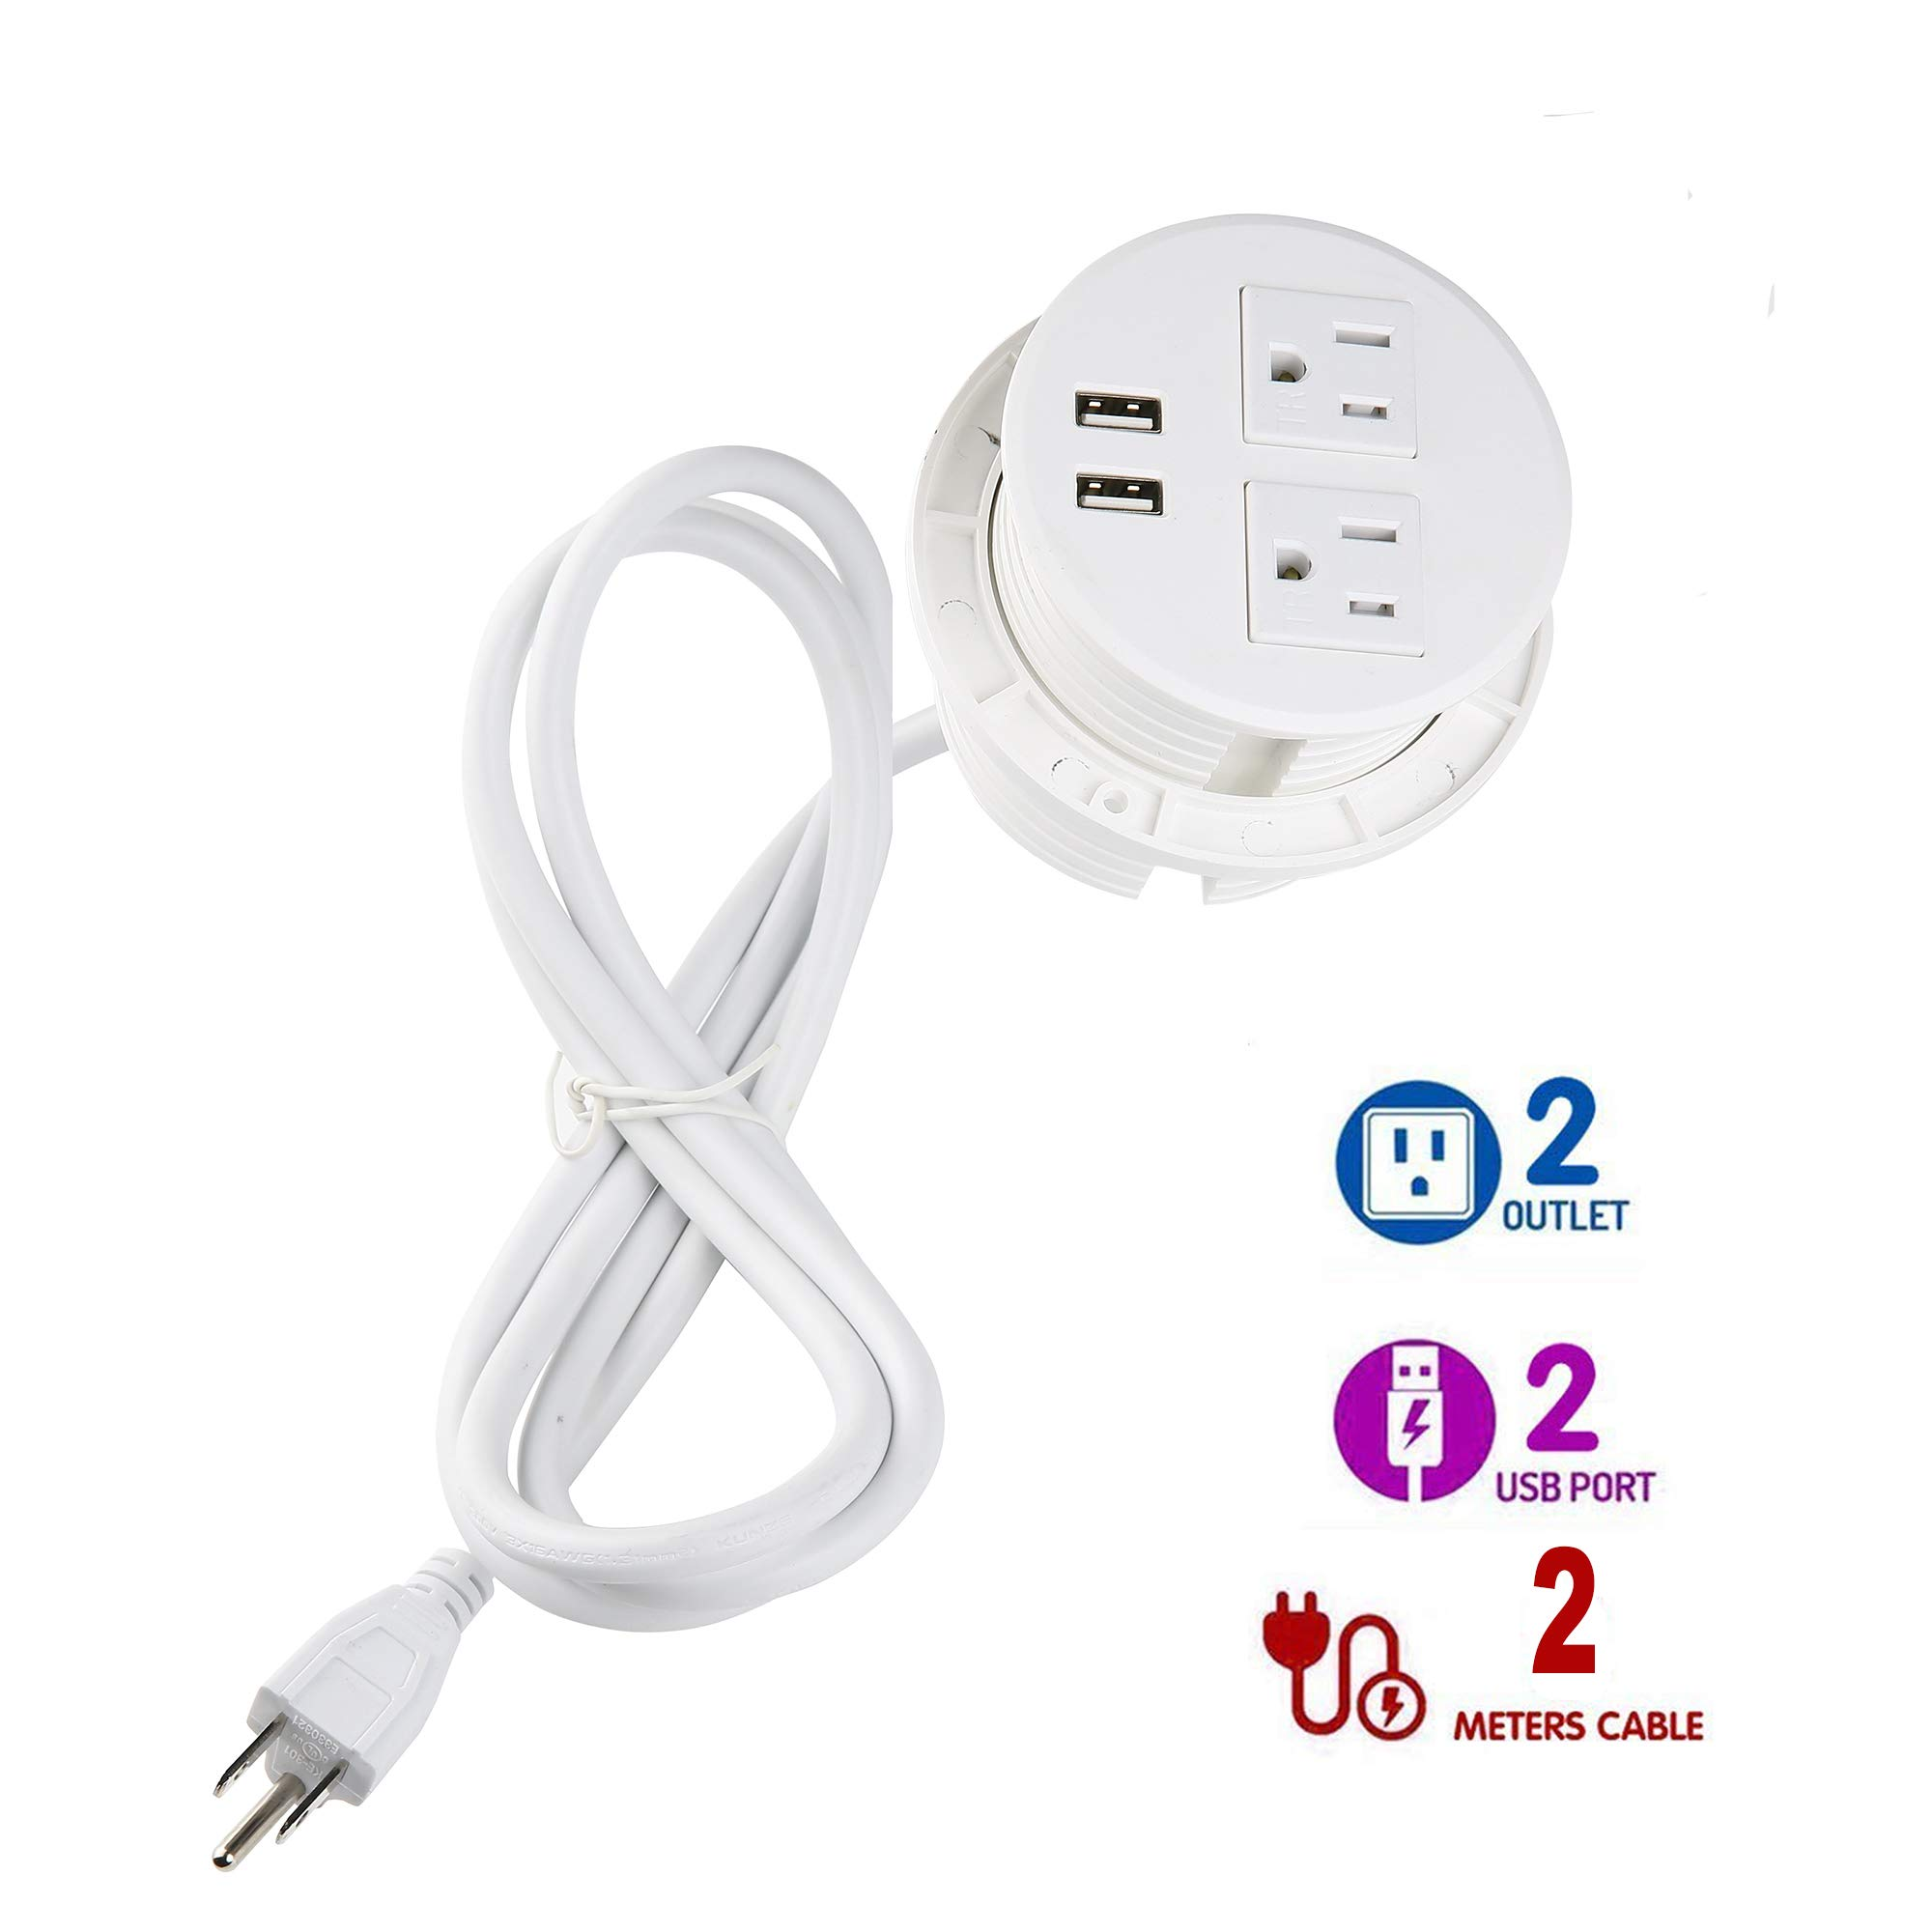 Desktop Power Grommet,Power Strip 2 US Standard AC Outlets 2USB Charger Port Slots and 6.6 ft Power Cord for Smart Phone Computer Office Home Kitchen White